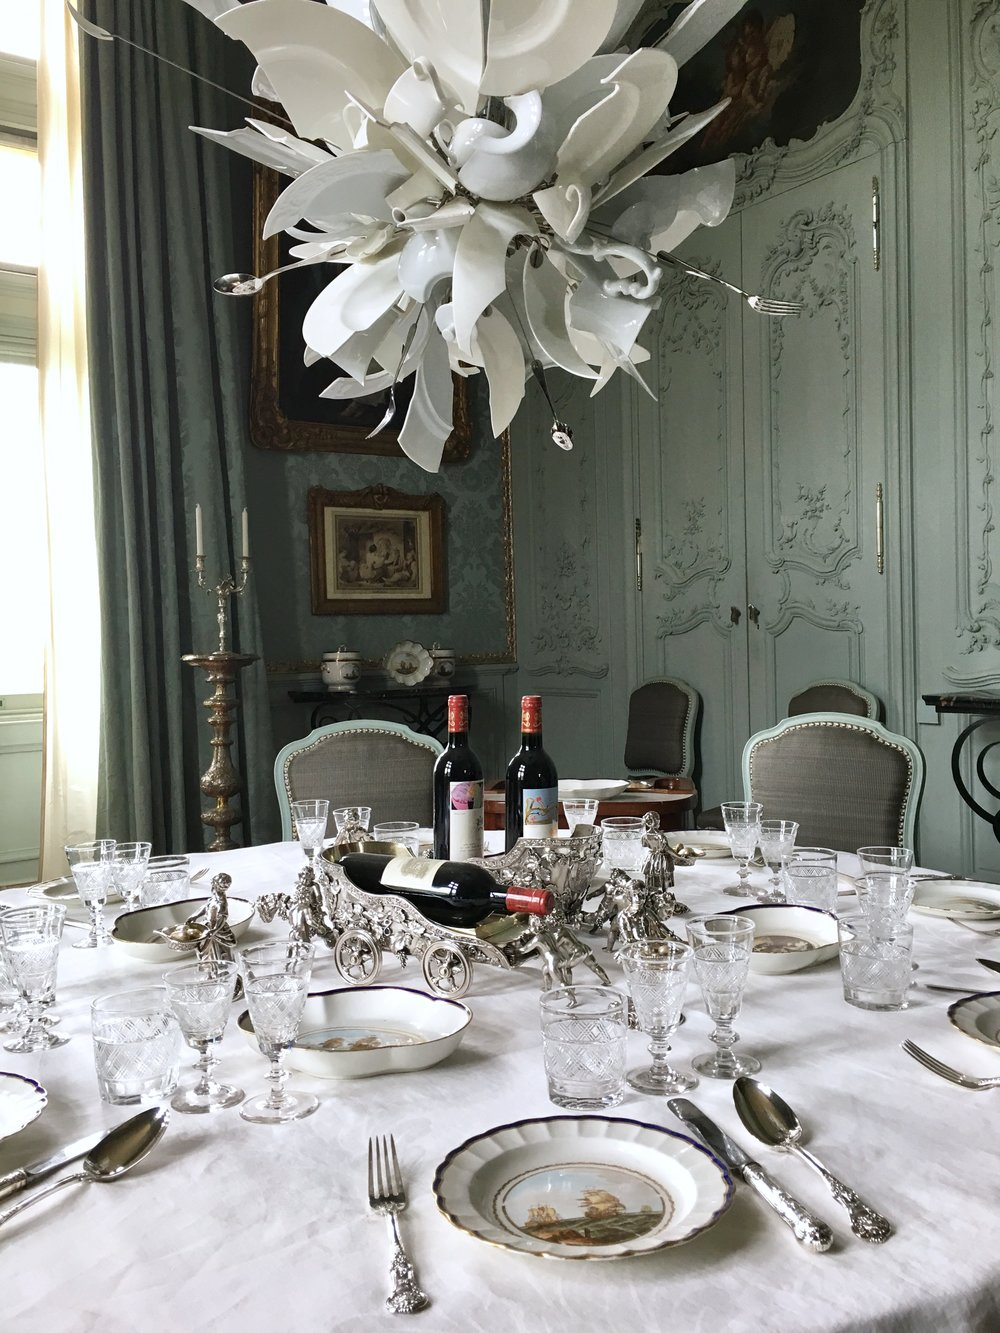 UK Waddesdon Manor broken glass chandelier dining room National Trust French Chateau Rothschild Buckinghamshire garden chateau Eileen Hsieh Follow That Bug .jpg